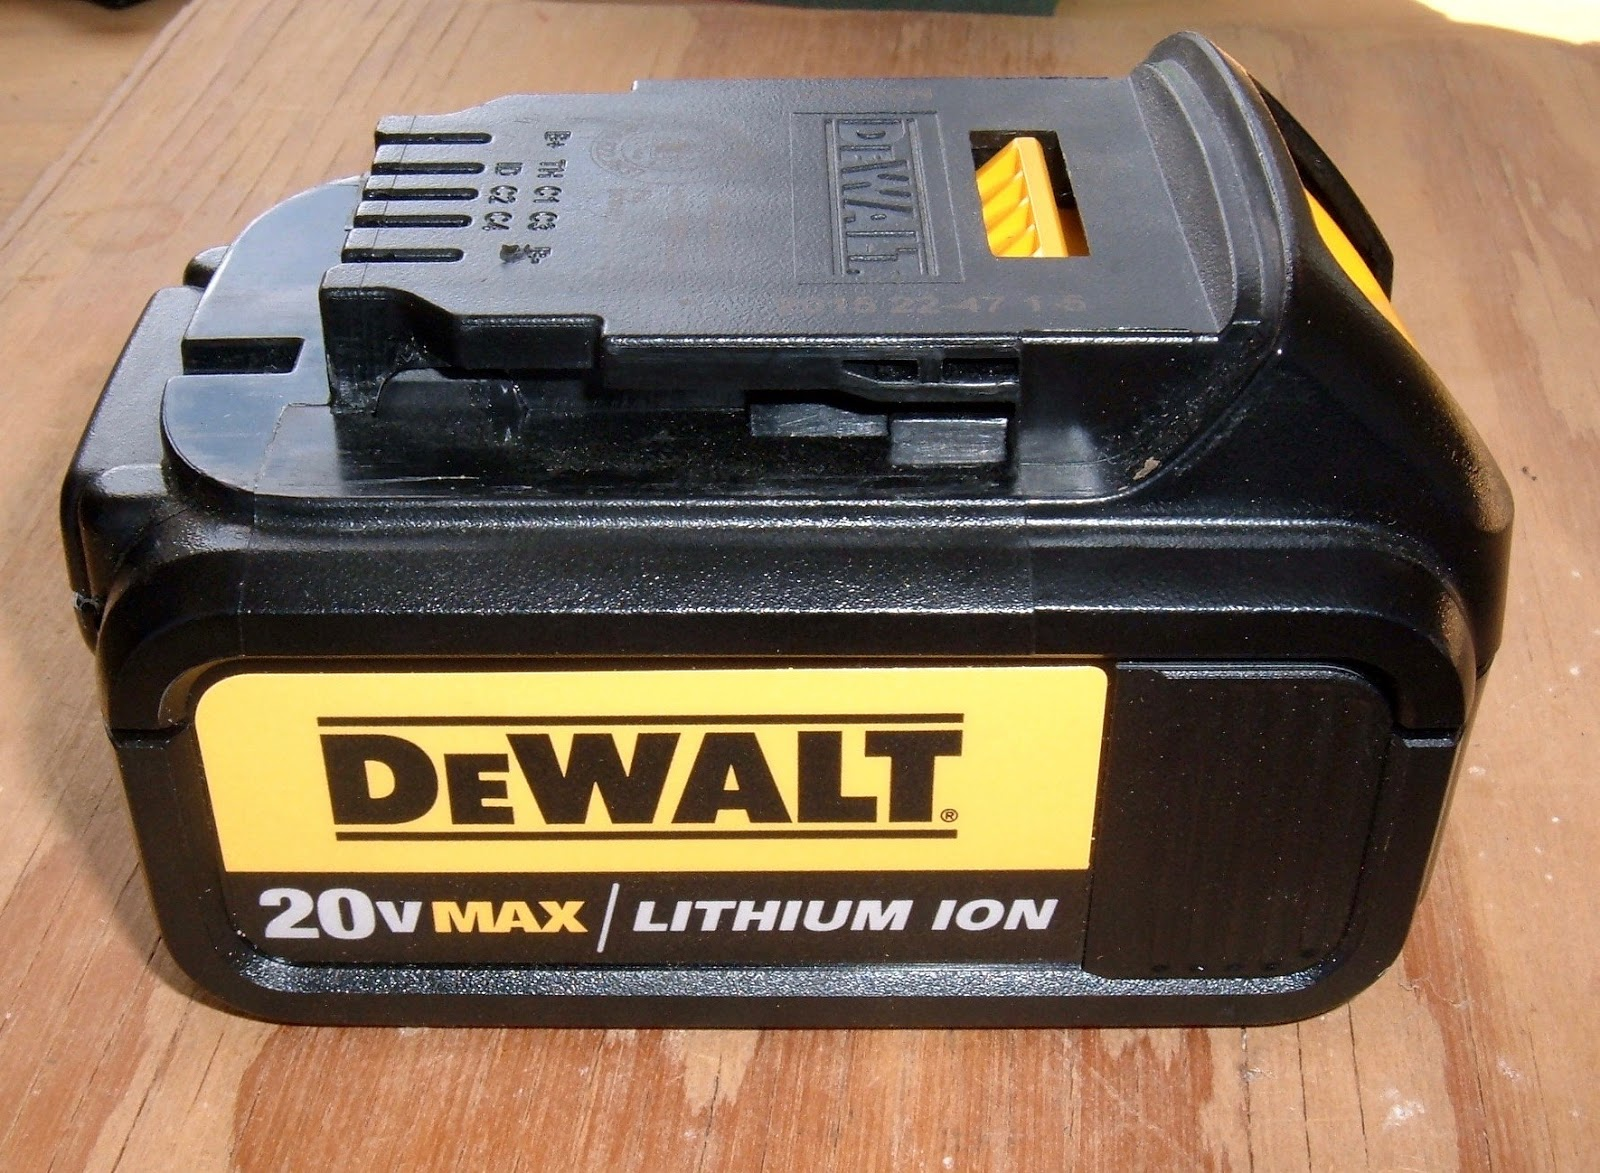 Syonyks Project Blog Dewalt 20v Max 30ah Battery Pack Teardown Details About 3 X Case 18650 Box With Protection Circuit 37v Analysis